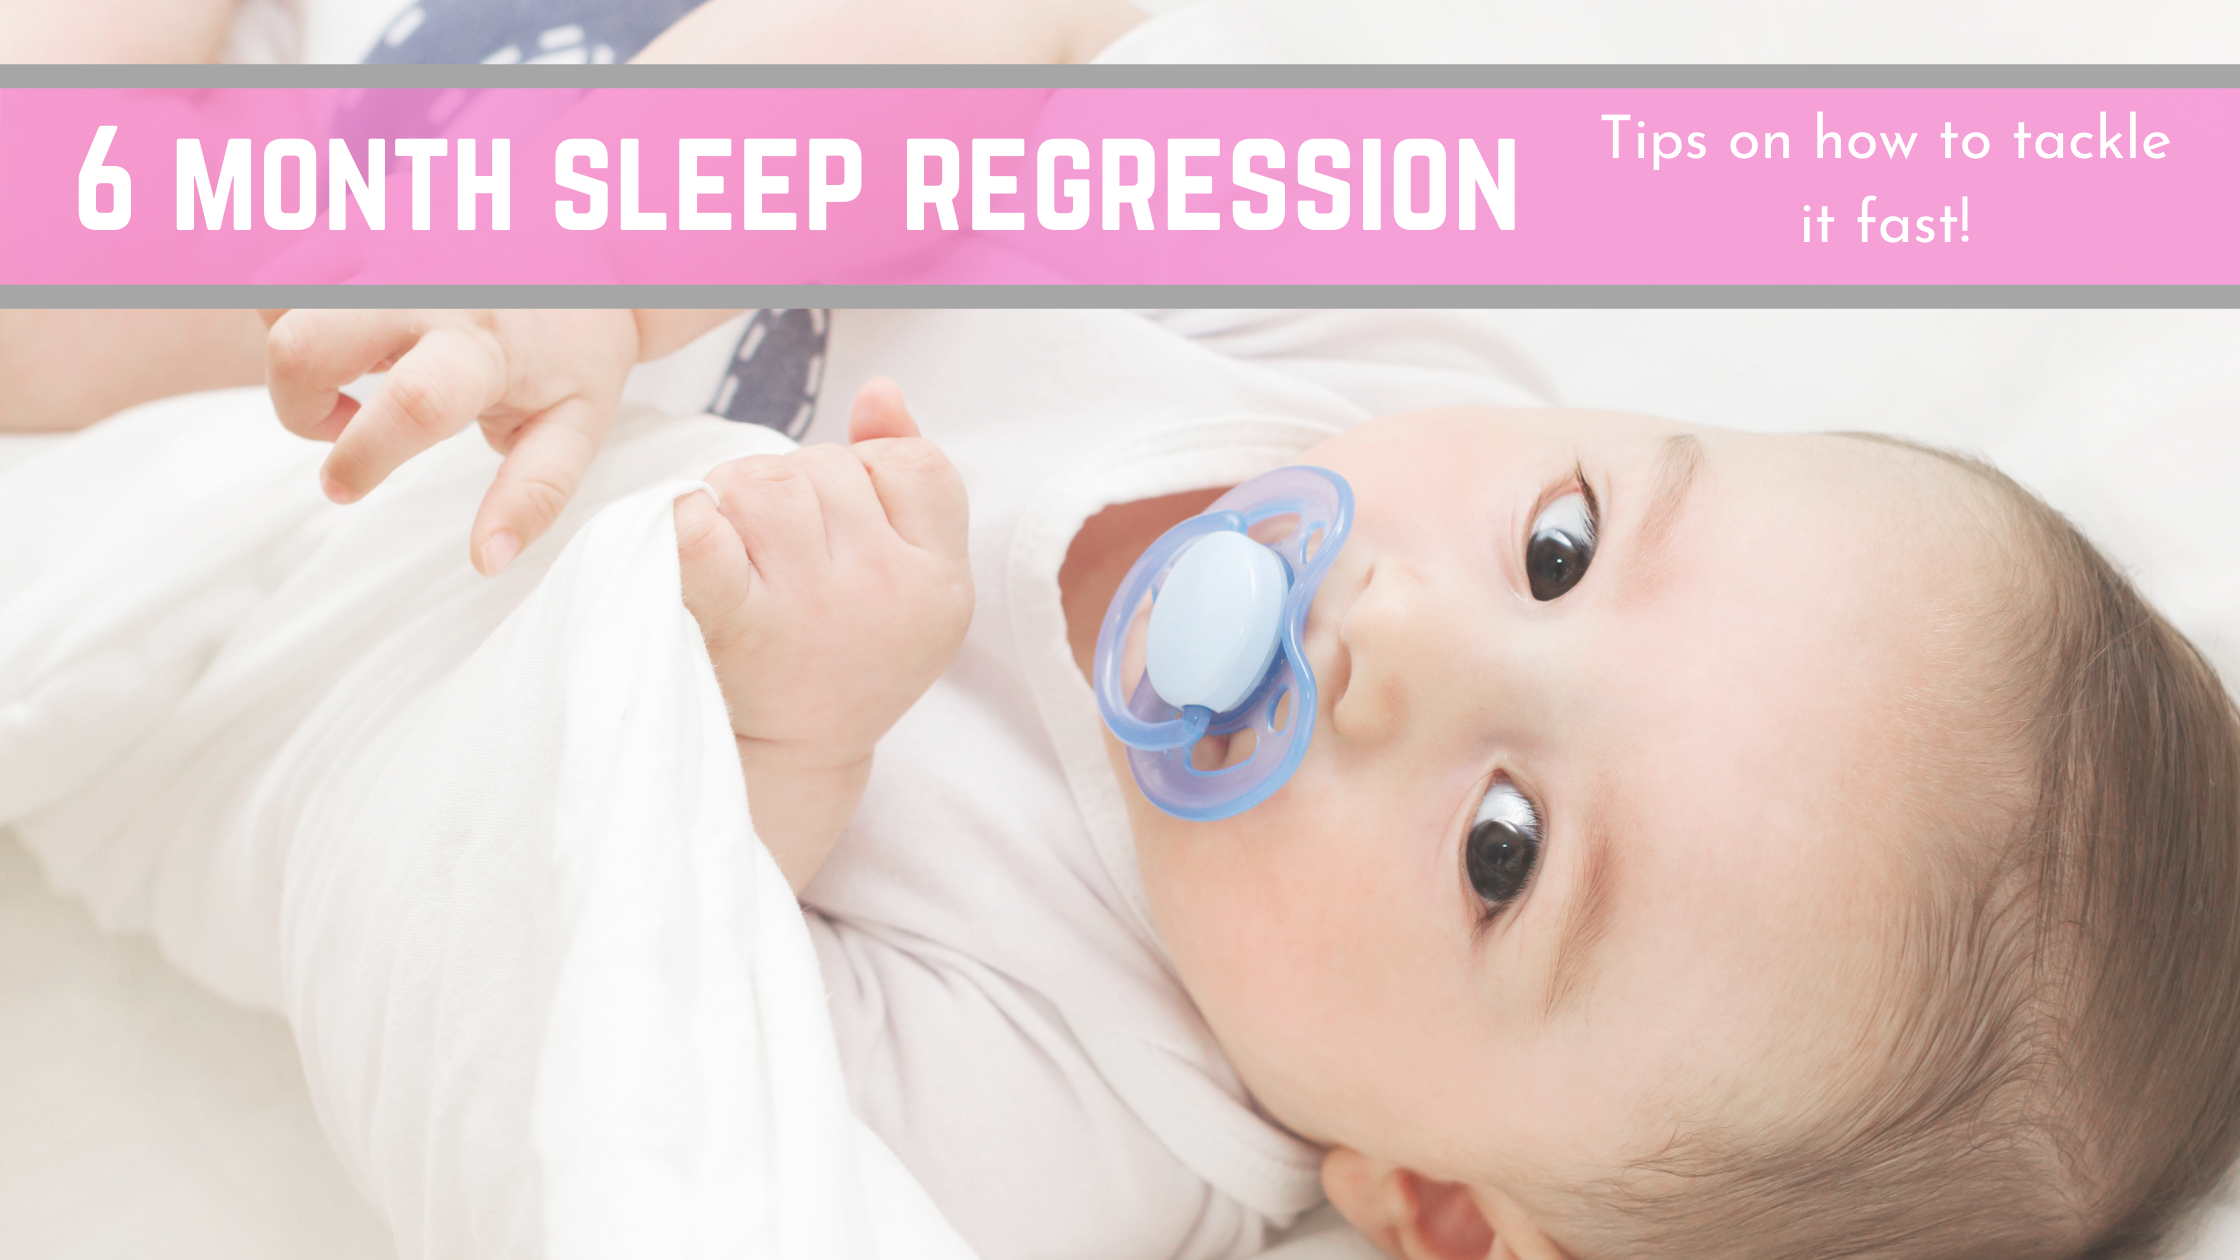 6 Month Sleep Regression: Tips on How to Tackle it Fast